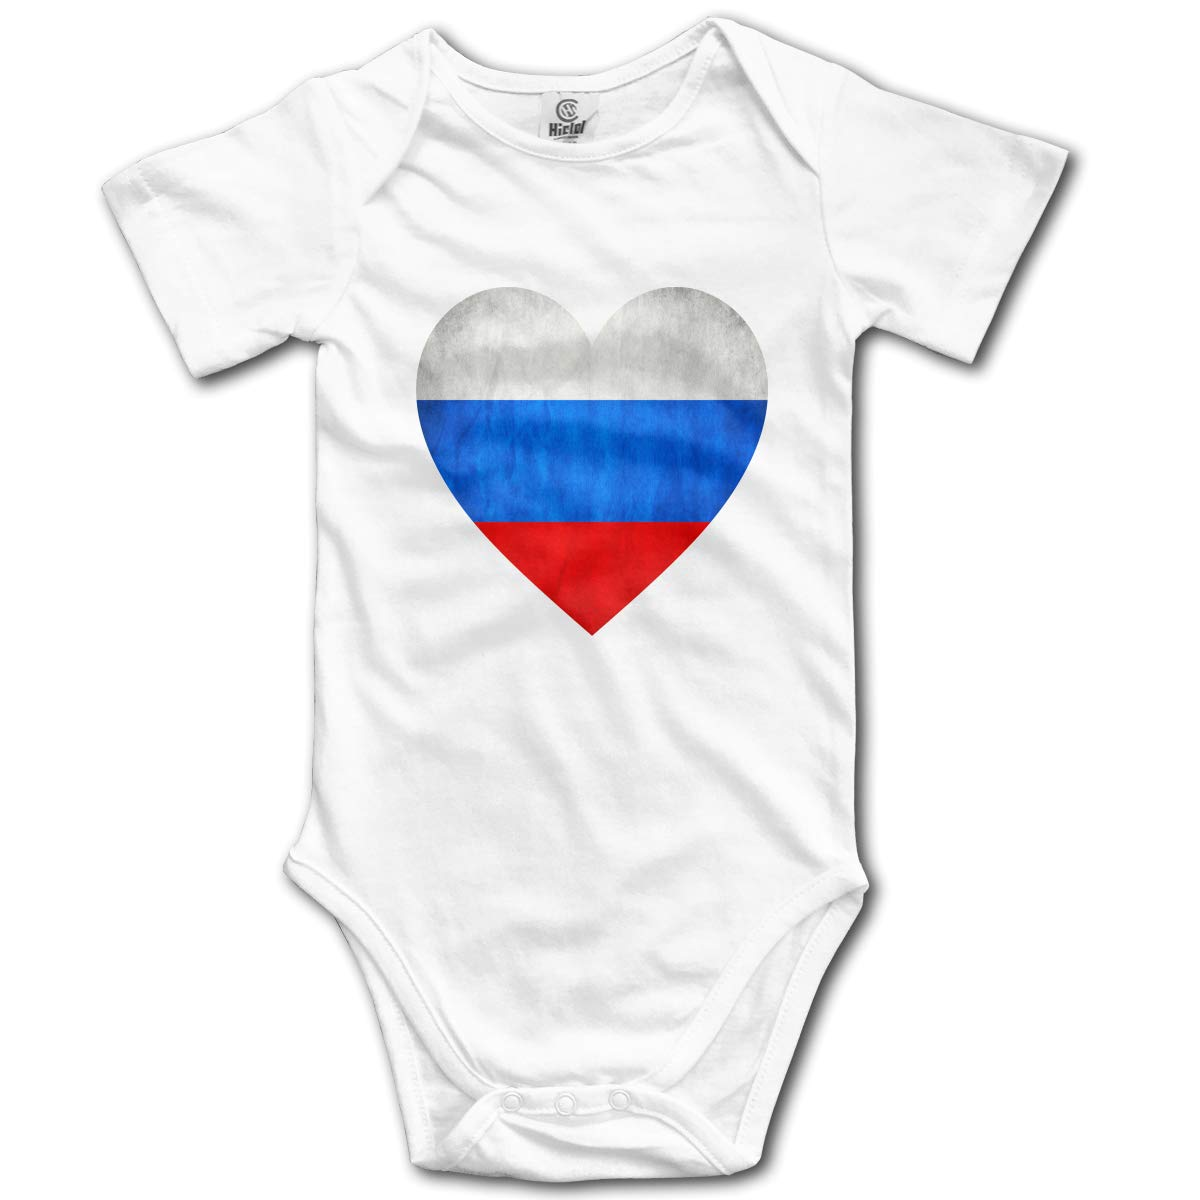 Baby Short-Sleeve Onesies Love Vintage Russian Flag Bodysuit Baby Outfits